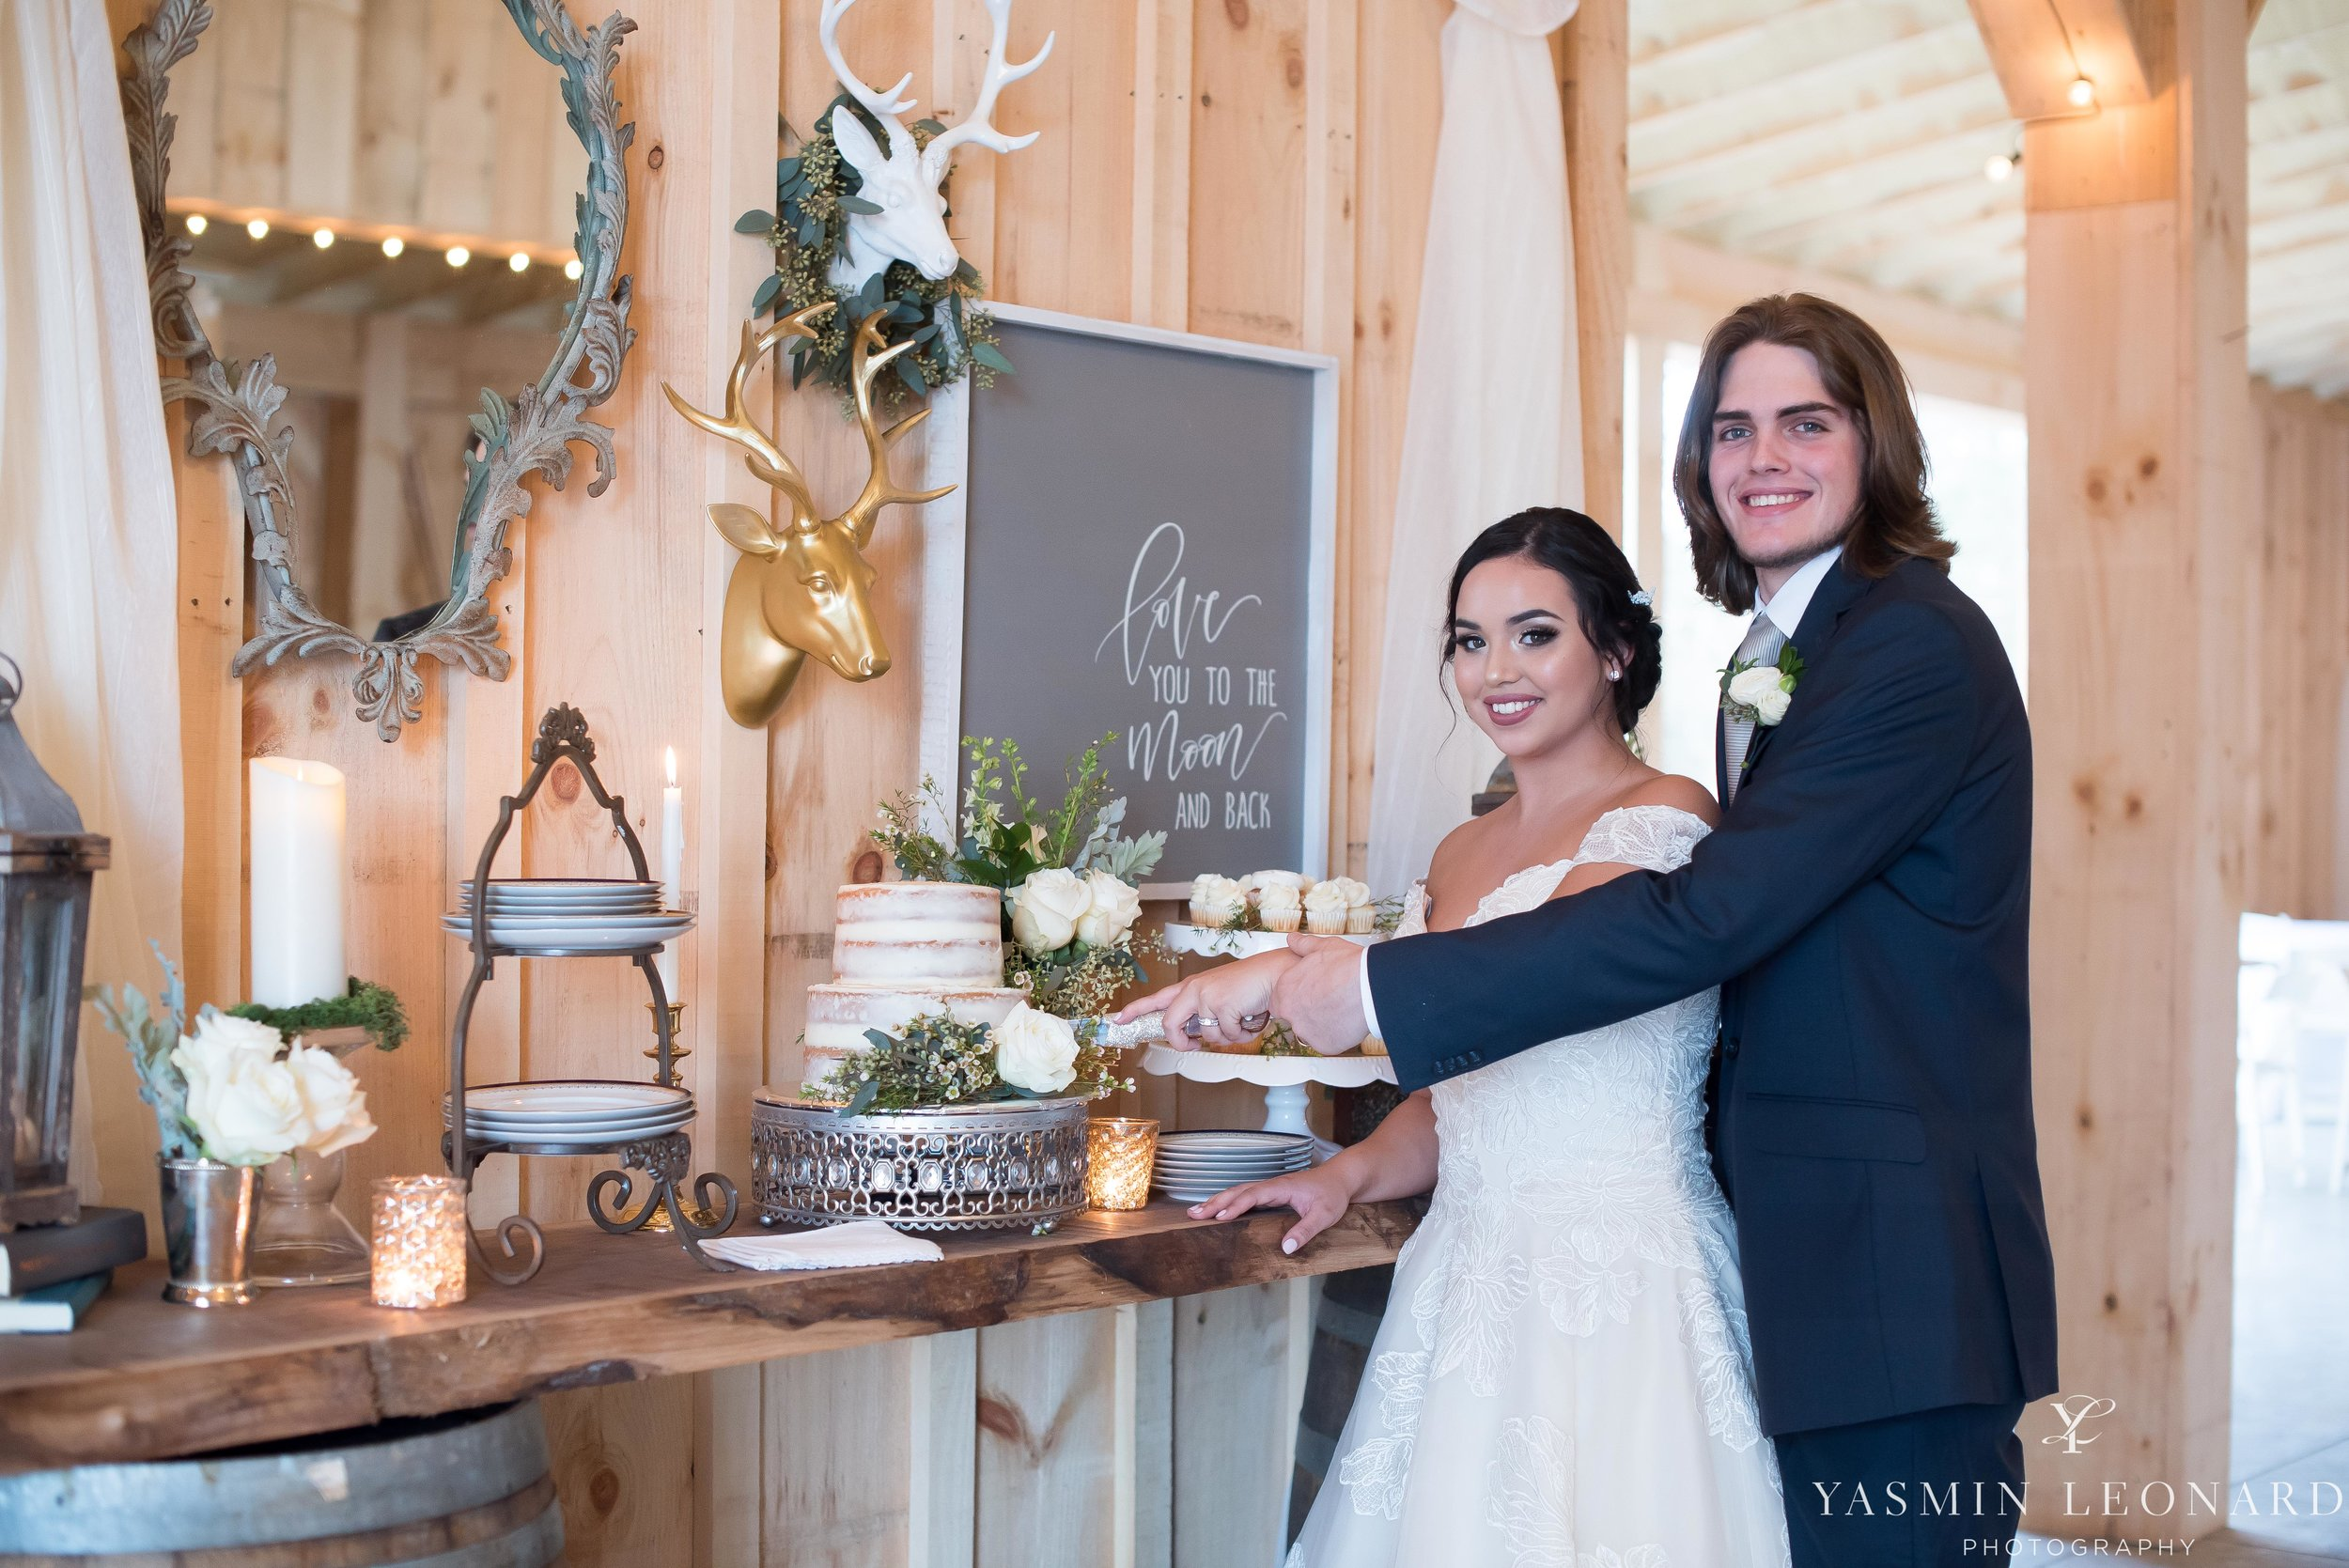 Old Homeplace Vineyard - Grits and Glitter - Dashing Dames Bridal Boutique - Just Priceless - Yasmin Leonard Photography - High Point Weddings - NC Weddings - NC Wedding Venues - High Point Jewelers - NC Wines - NC Vineyards - Cupcake Cuties-73.jpg